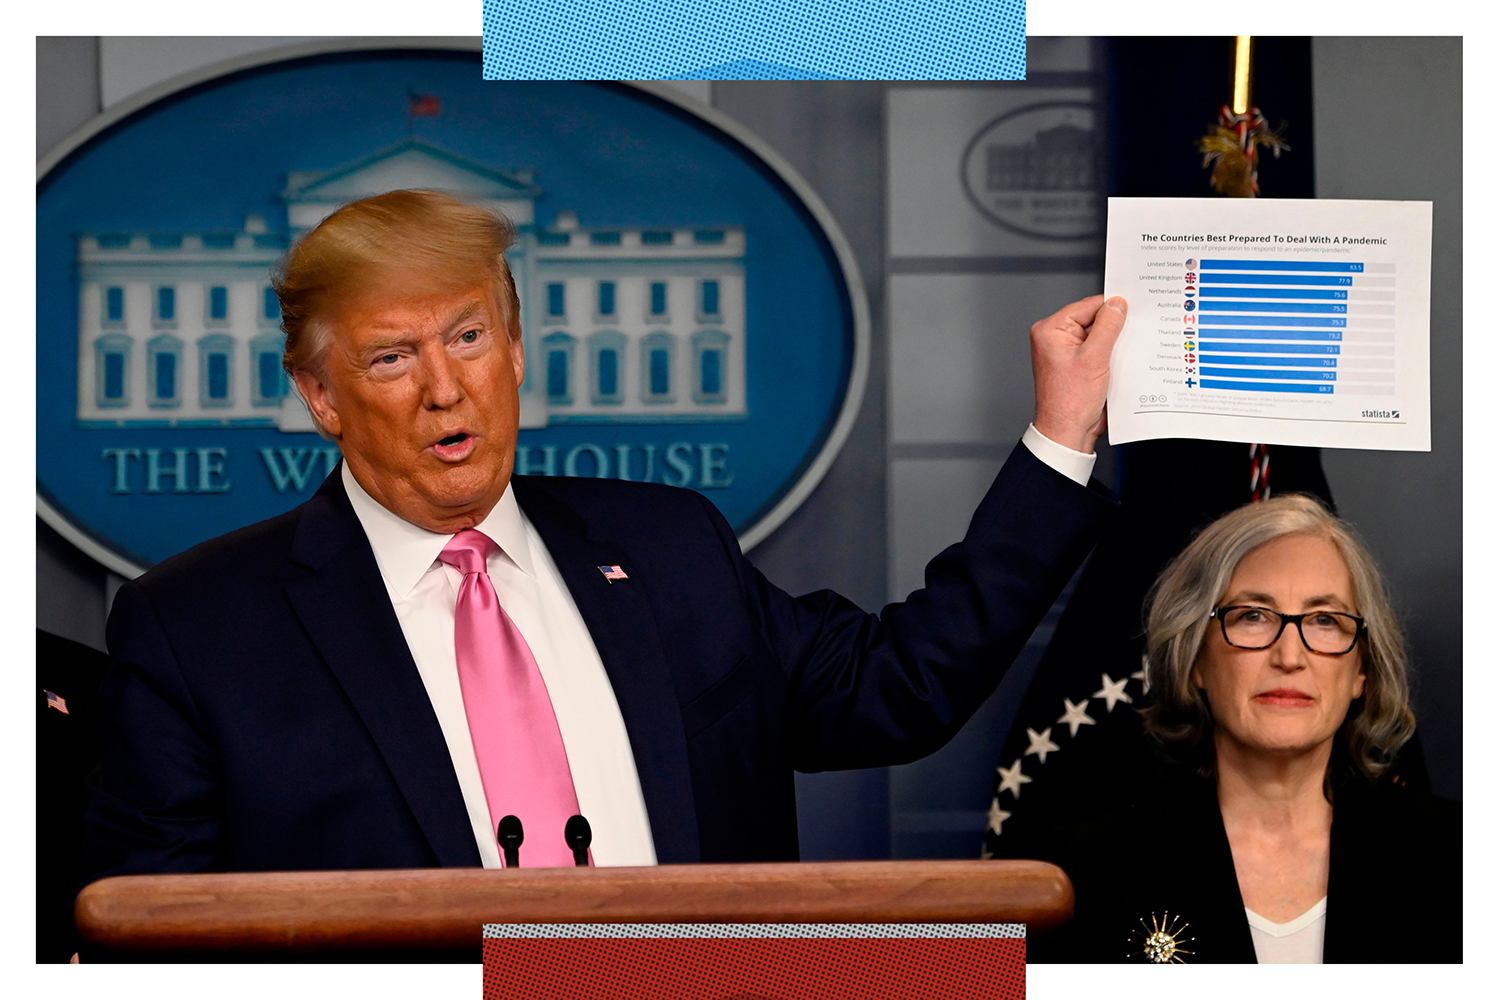 U.S. President Donald Trump holds a chart showing the United States' pandemic preparedness at a news conference on the COVID-19 outbreak alongside CDC Principal Deputy Director Anne Schuchat at the White House on Feb. 26, 2020.